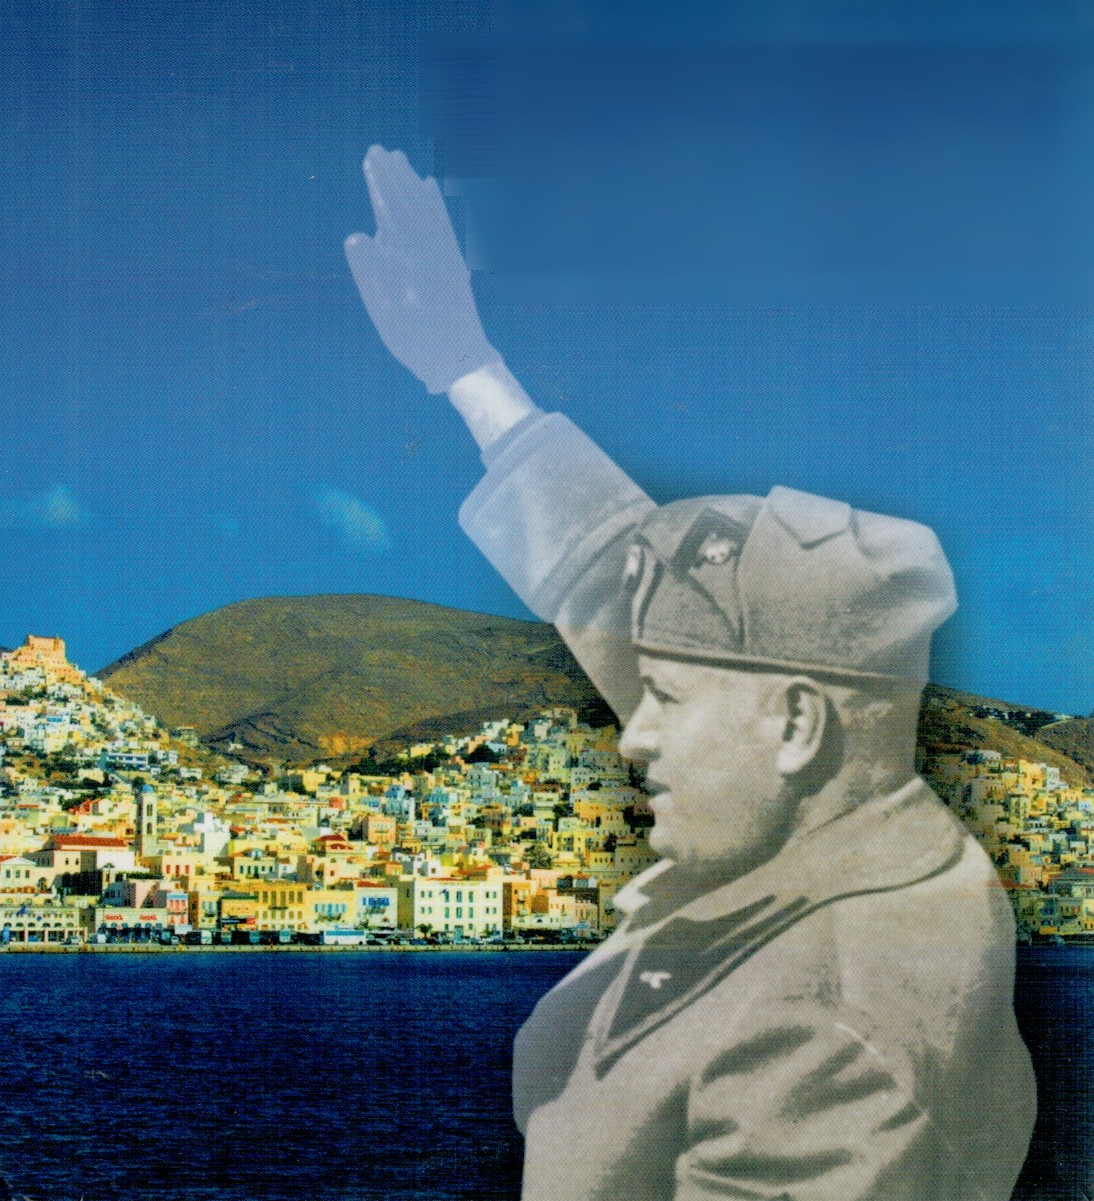 Mussolini's Greek Island: The Italian occupation of Syros and the Cyclades in World War II, and how it is remembered, a talk by Dr Sheila Lecoeur